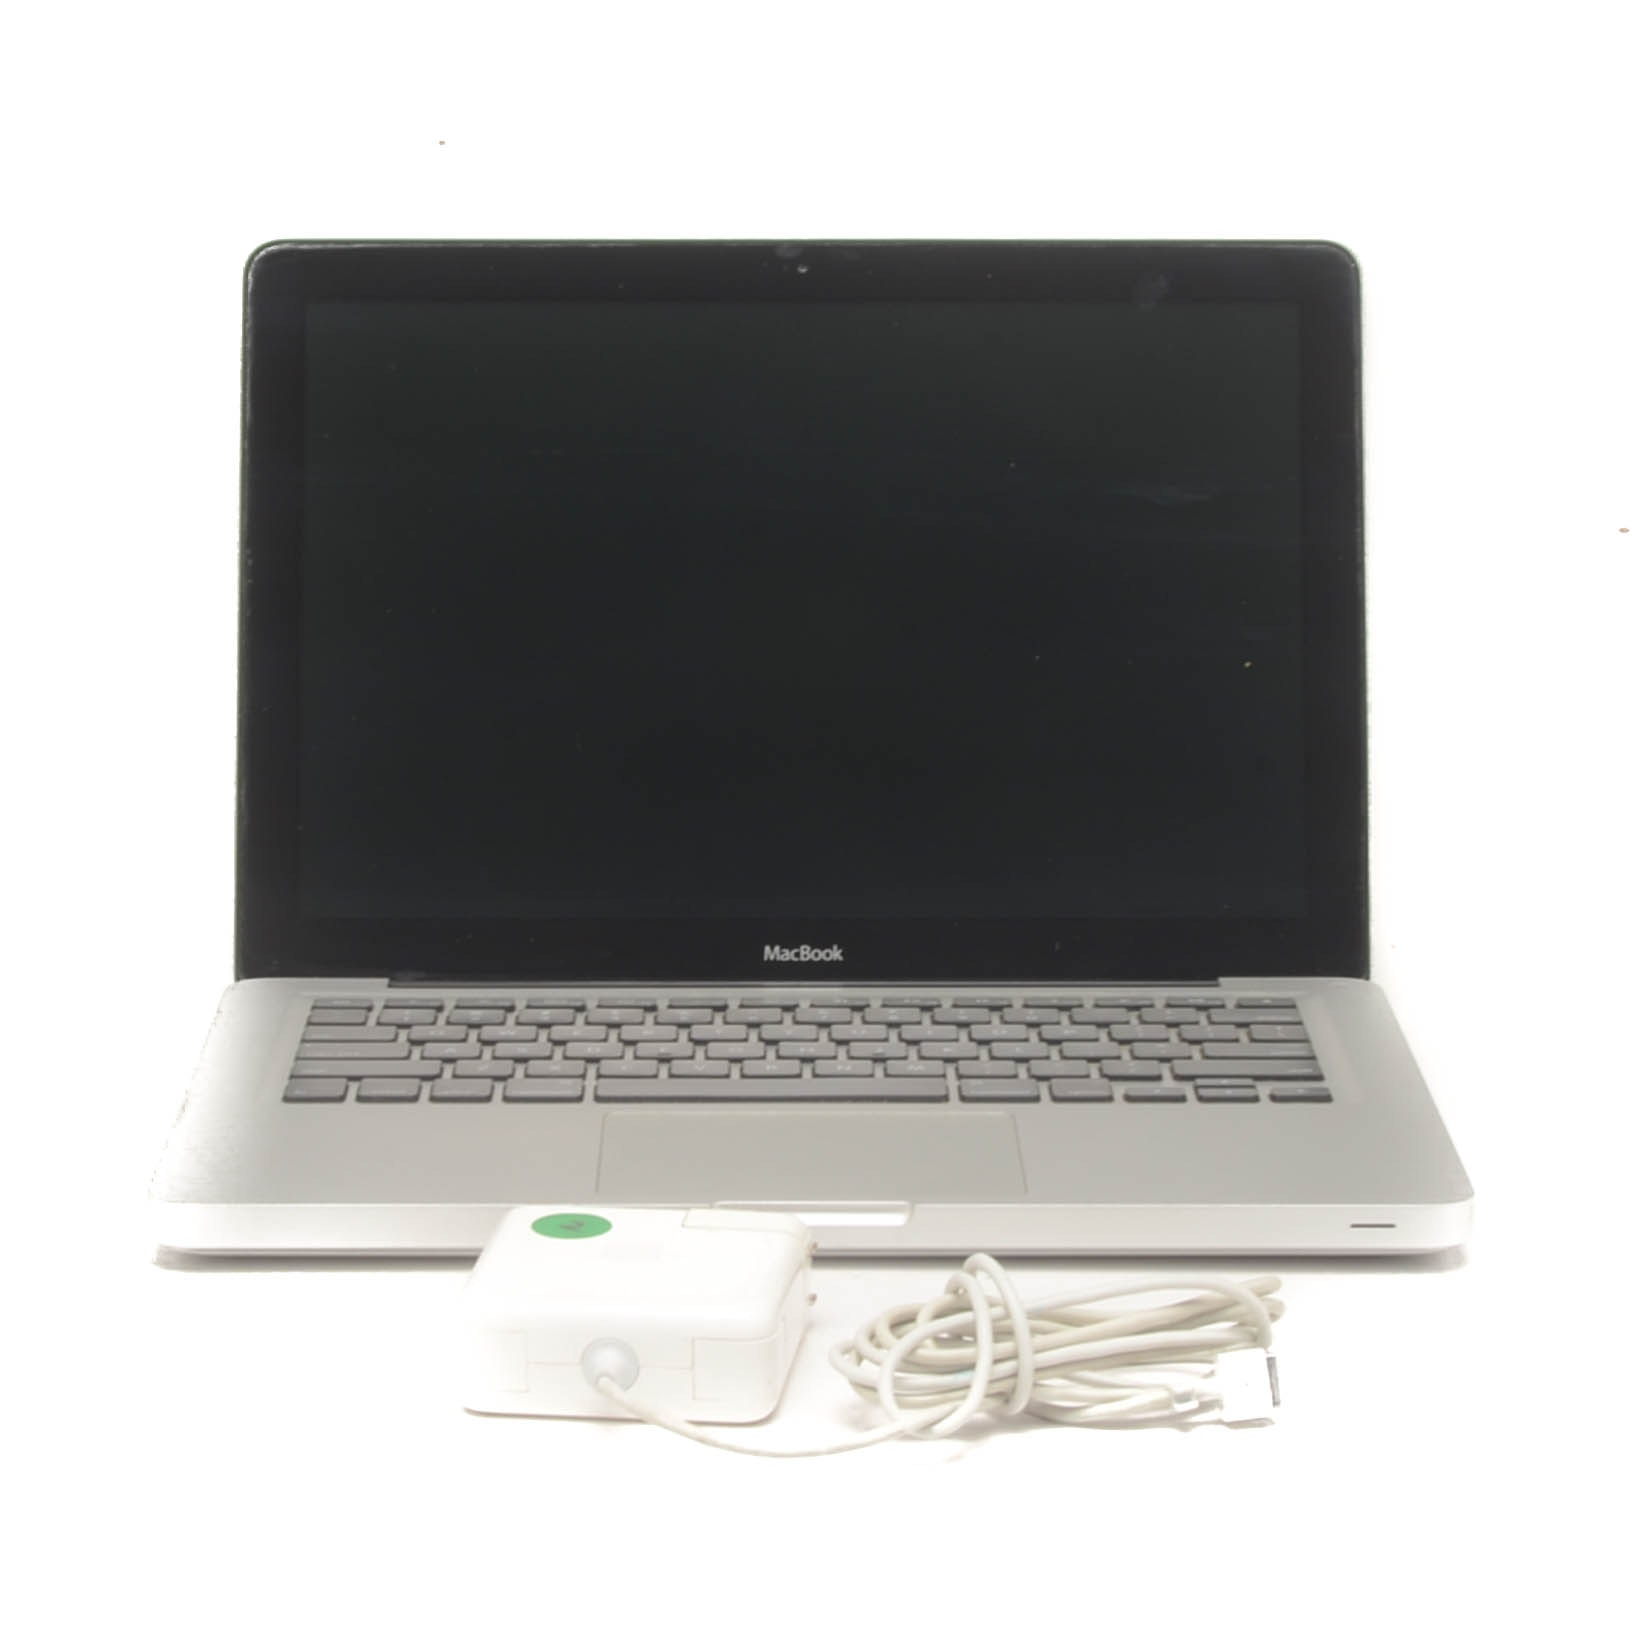 "13"" MacBook Laptop"